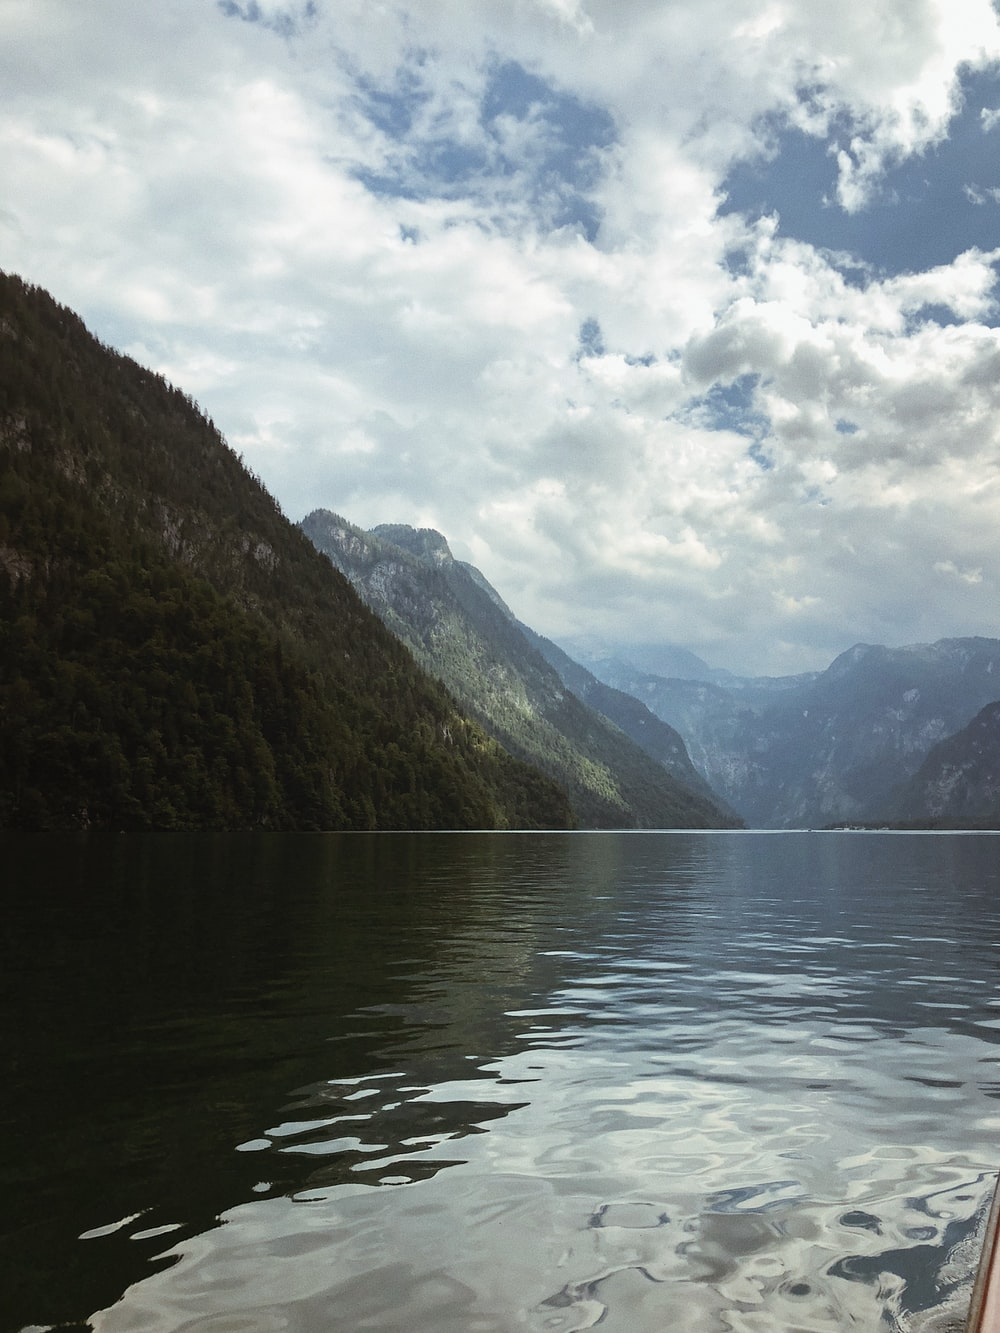 green mountains beside body of water under cloudy sky during daytime